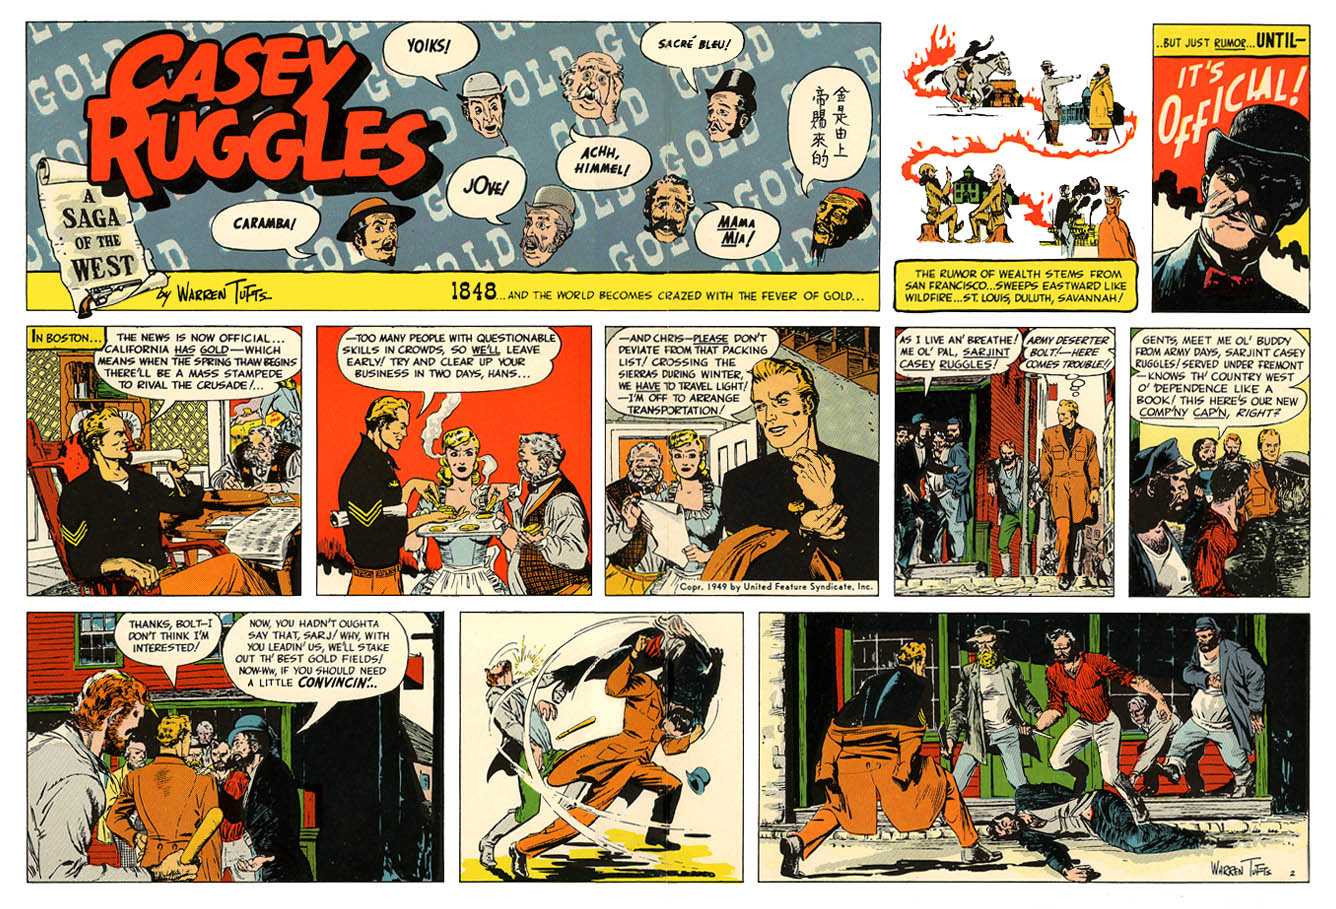 Casey-Ruggles_Tufts_MC_page02